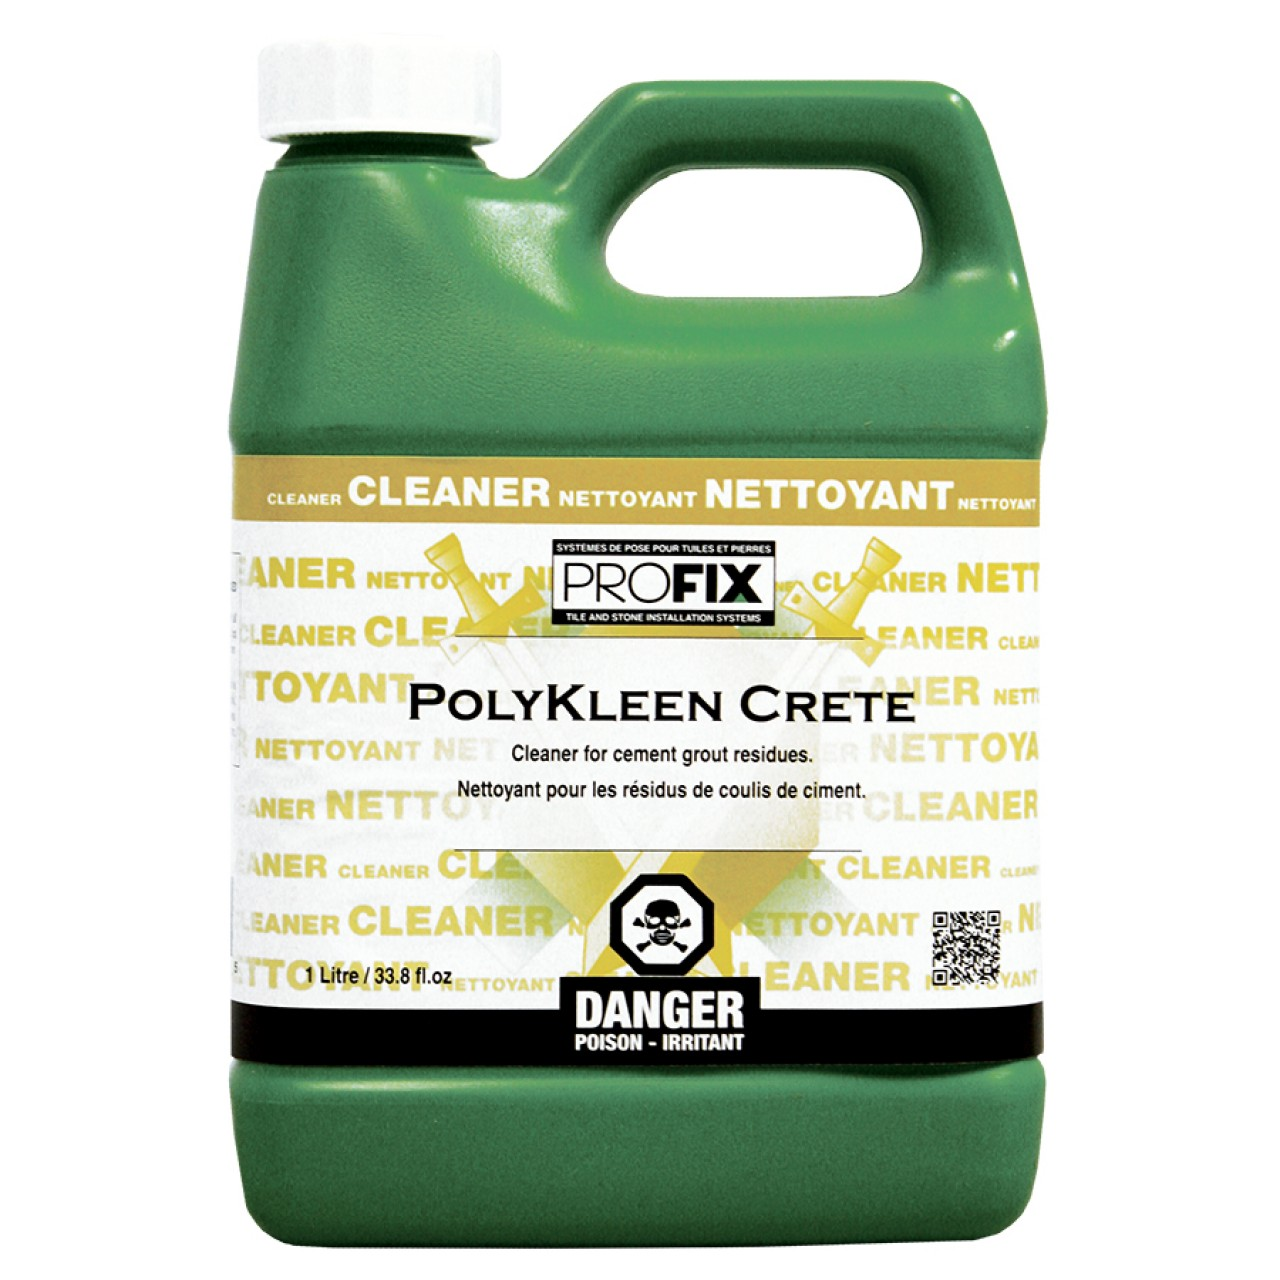 Profix systems polykleen crete cement grout haze cleaner for Homemade cement cleaner